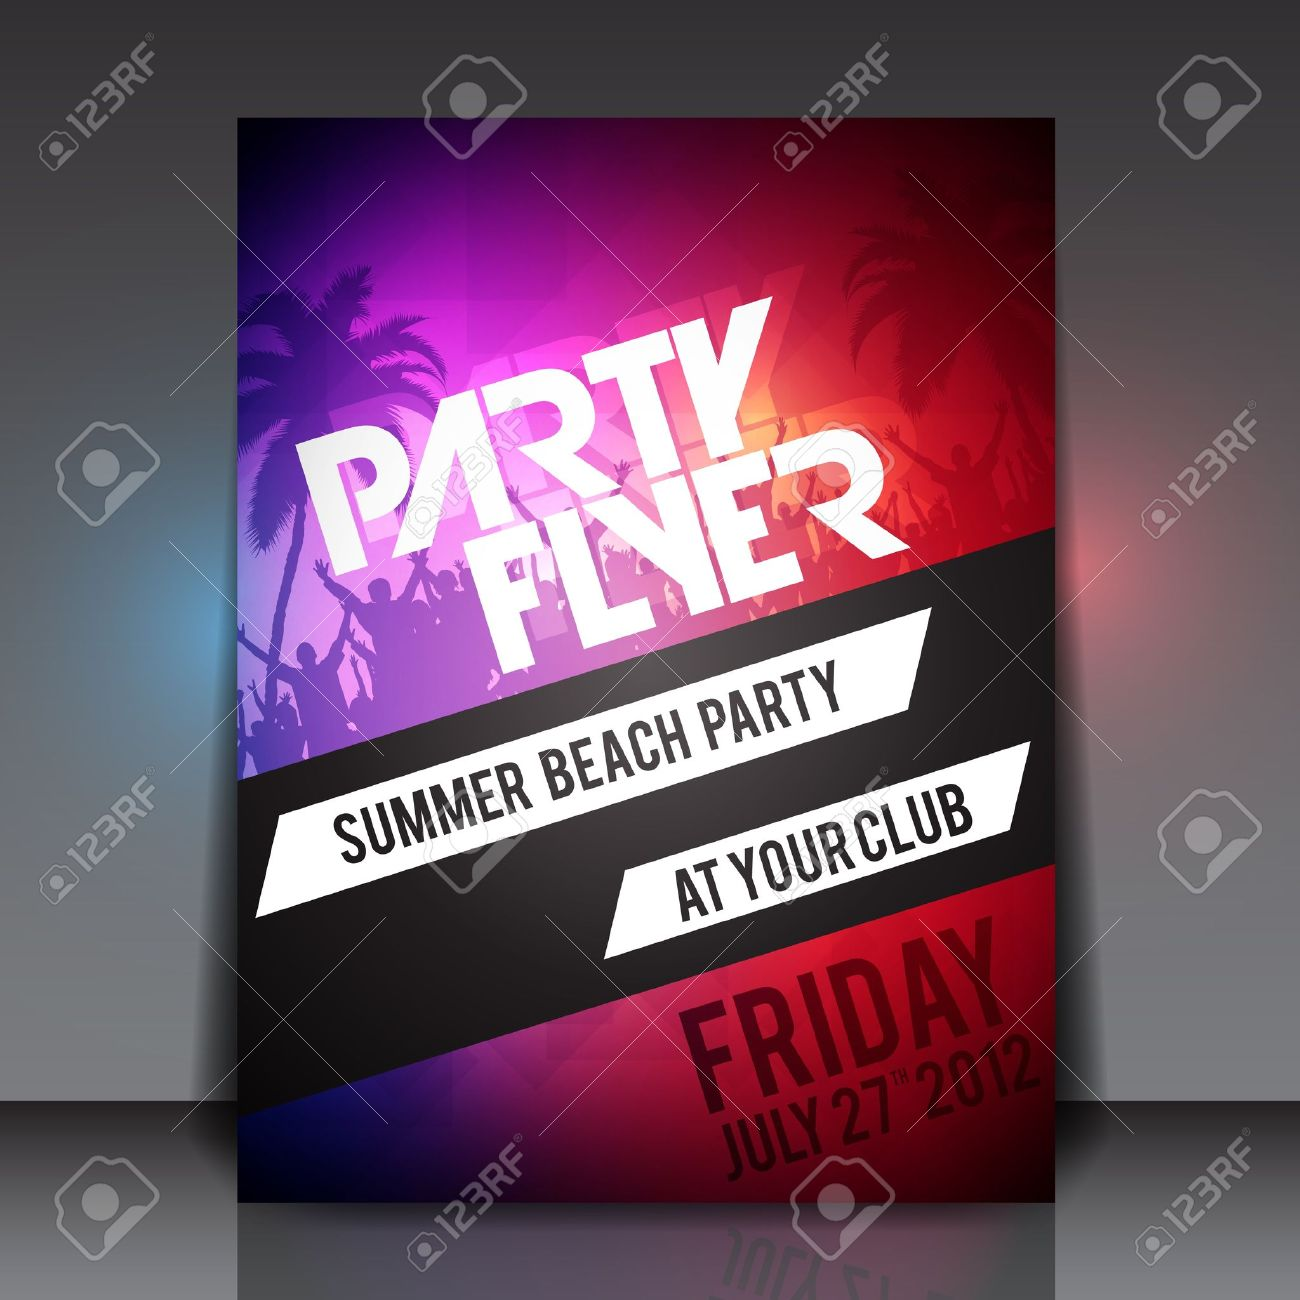 Summer Beach Party Flyer Template Royalty Free Cliparts, Vectors ...